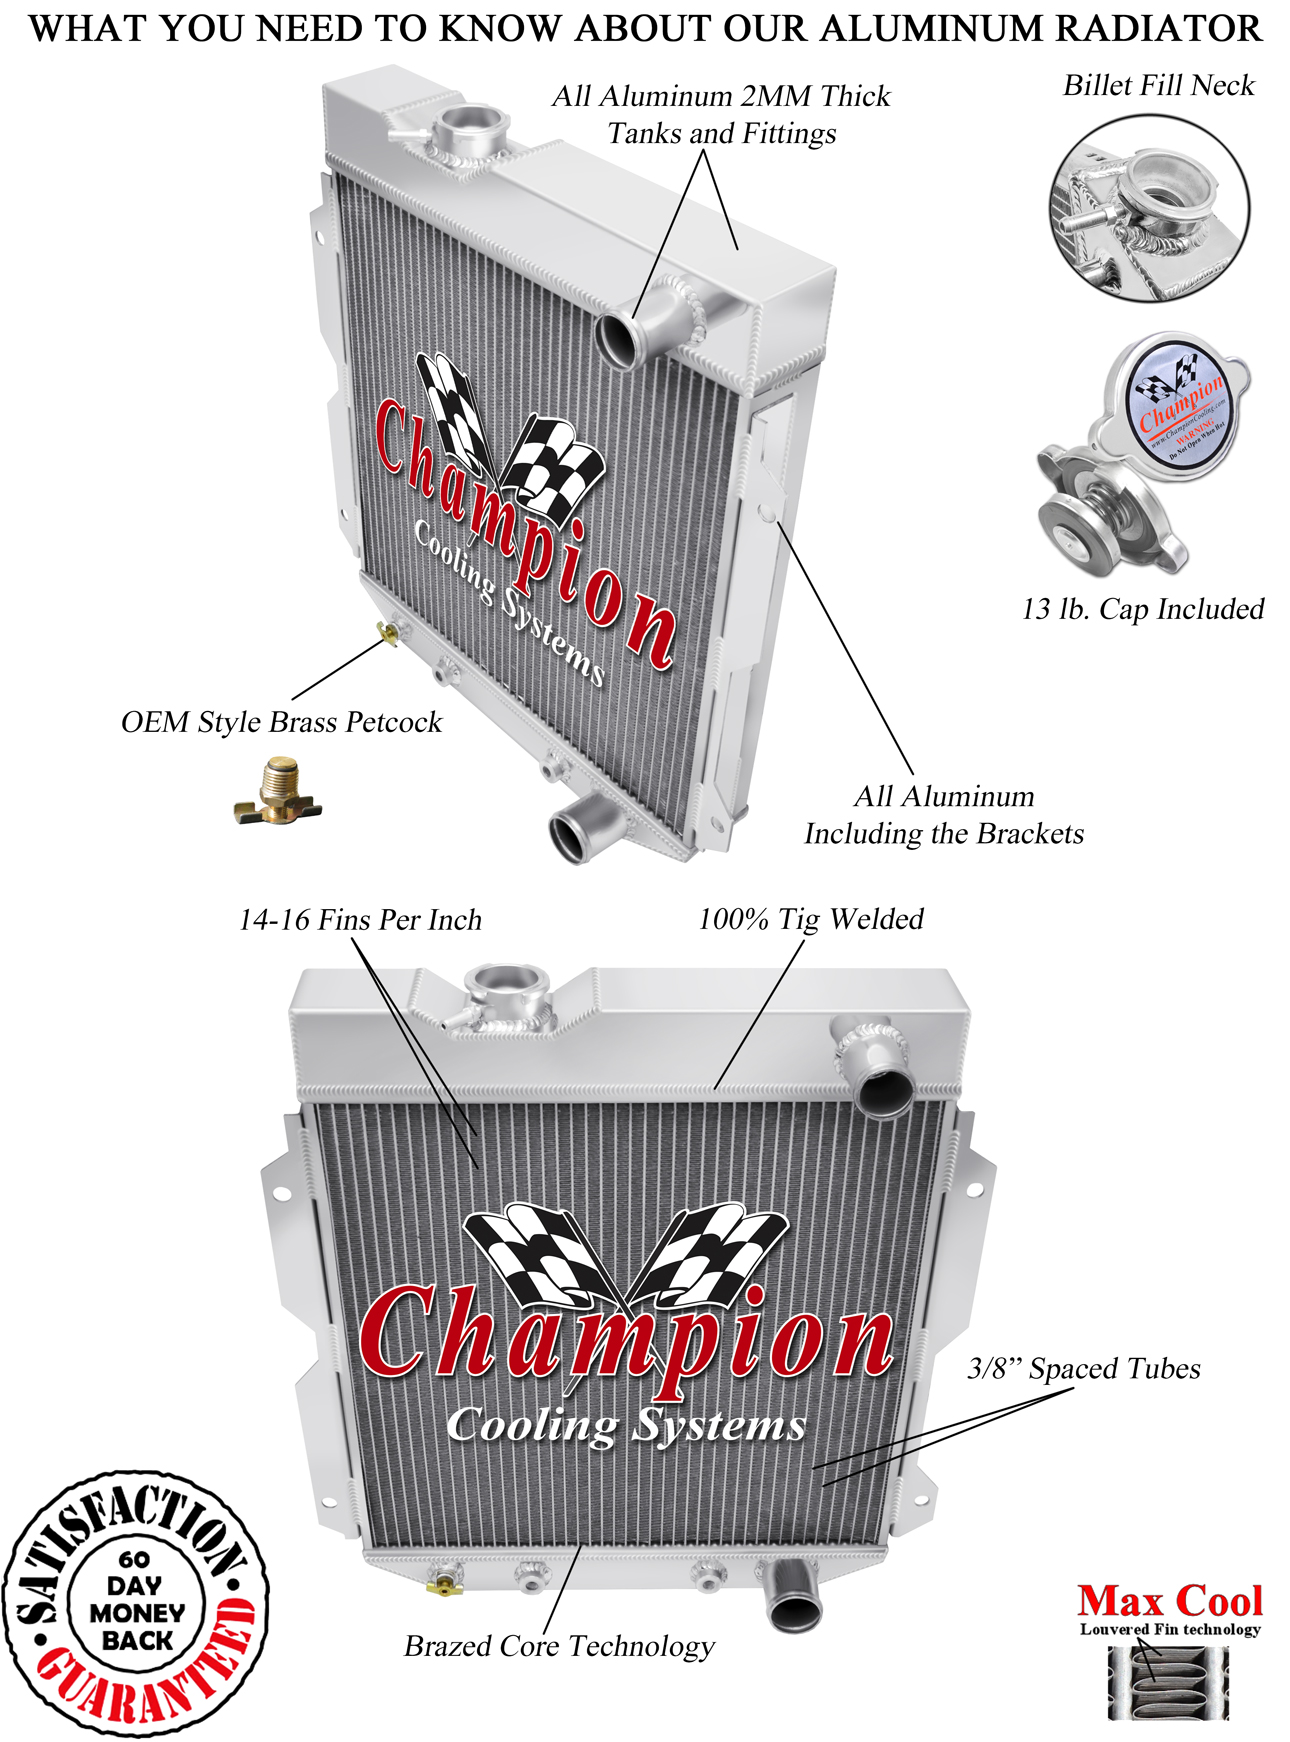 https://www.championcooling.com/photos/Photos%20White/Without%20Fans/6065LP/6065LP_%20White_Diagram_Champion.jpg